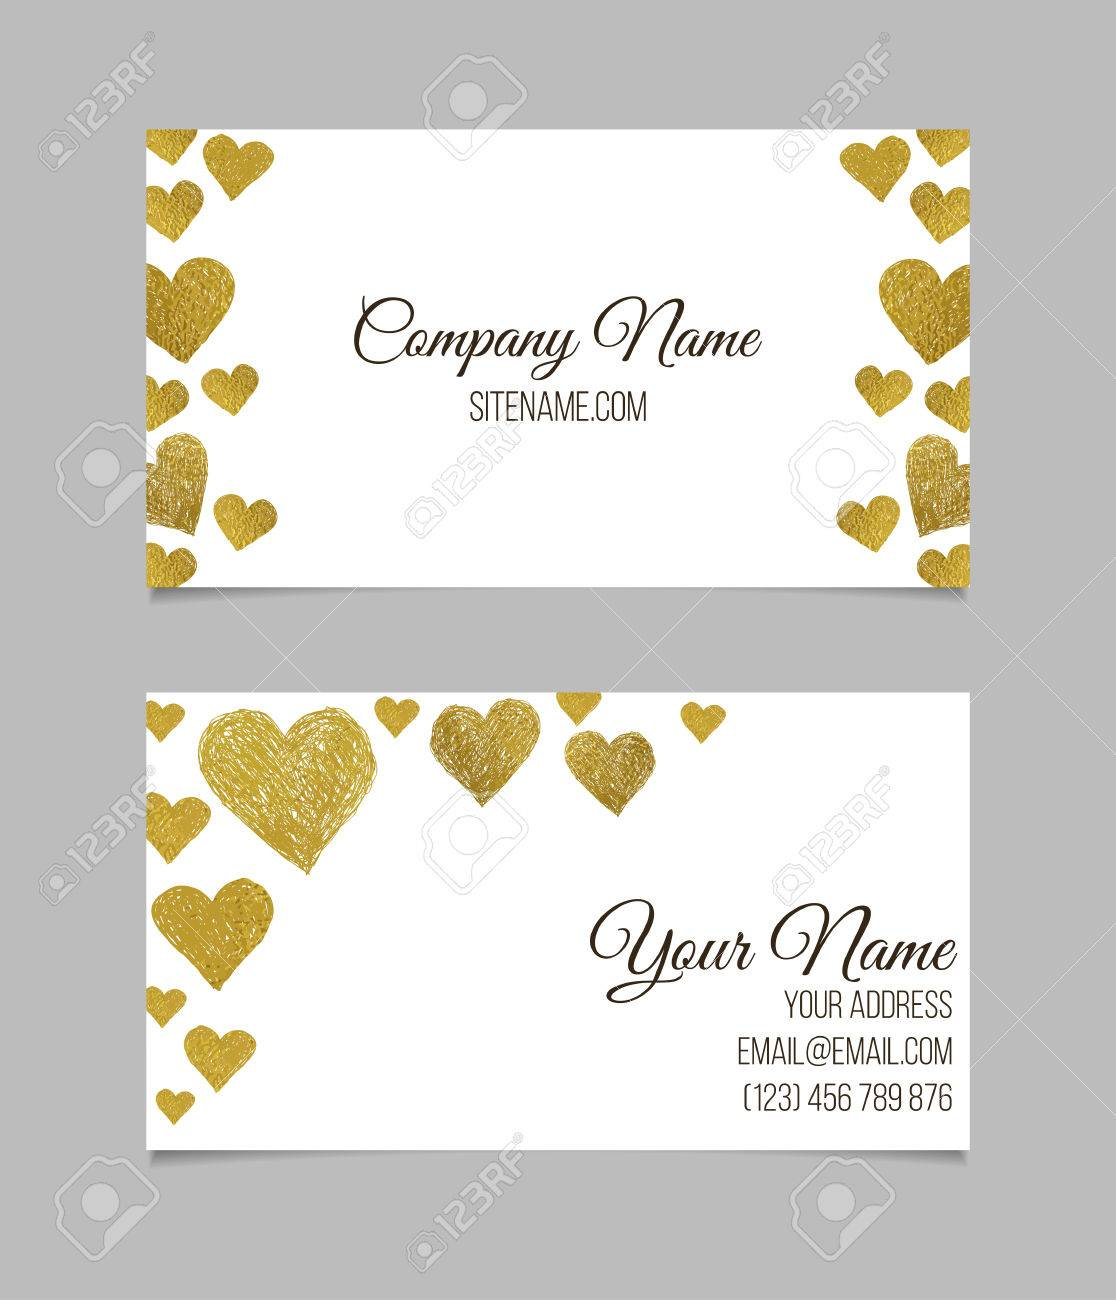 Business Card Template. Visiting Card With Golden Foil Heart ...